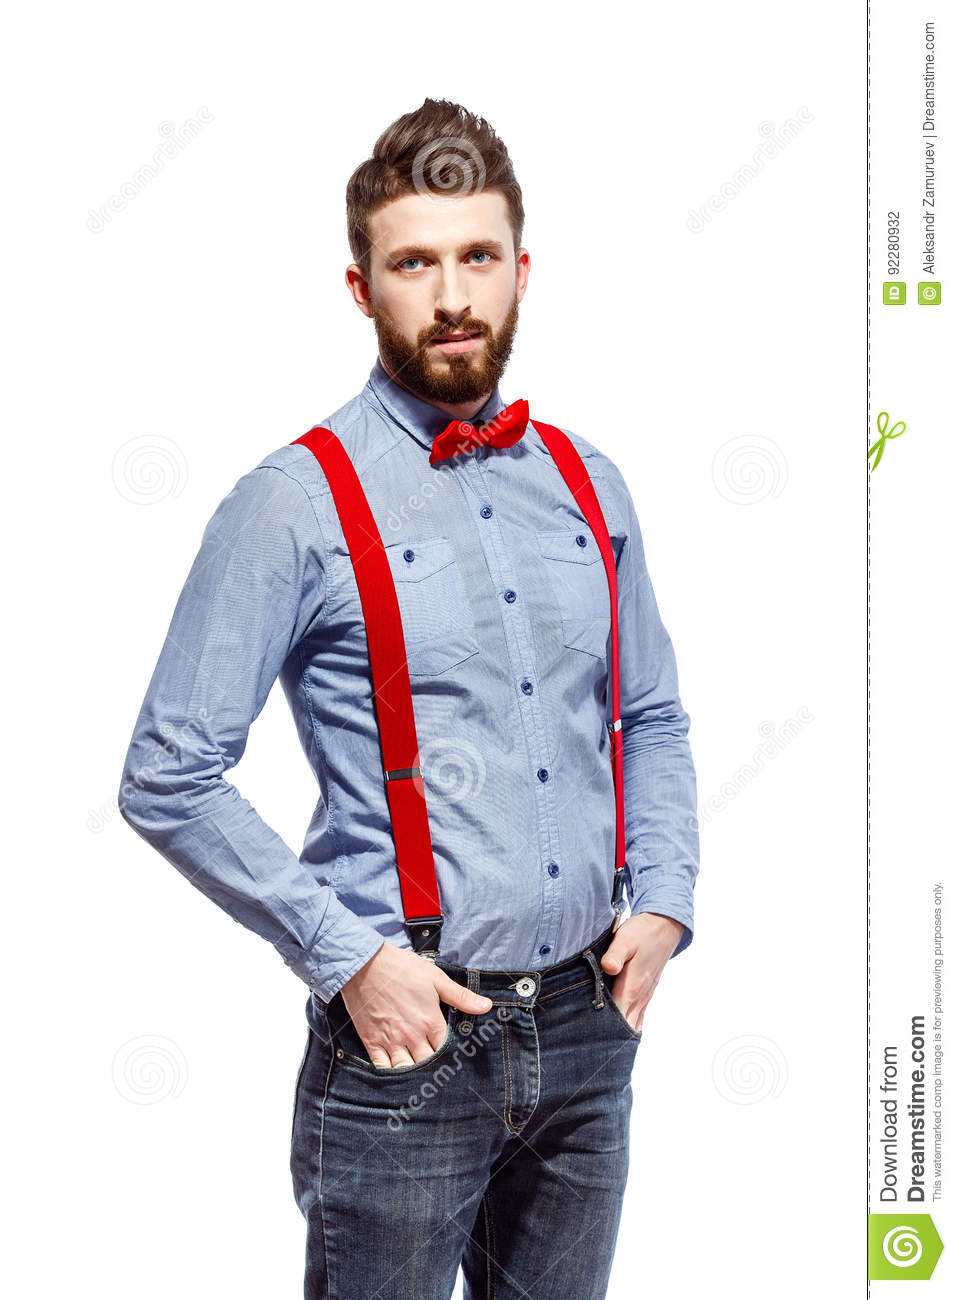 ce936f3818b9 Stylish guy wearing blue shirt, red bowtie and suspenders on white. smile.  stand. hands in the pocket.